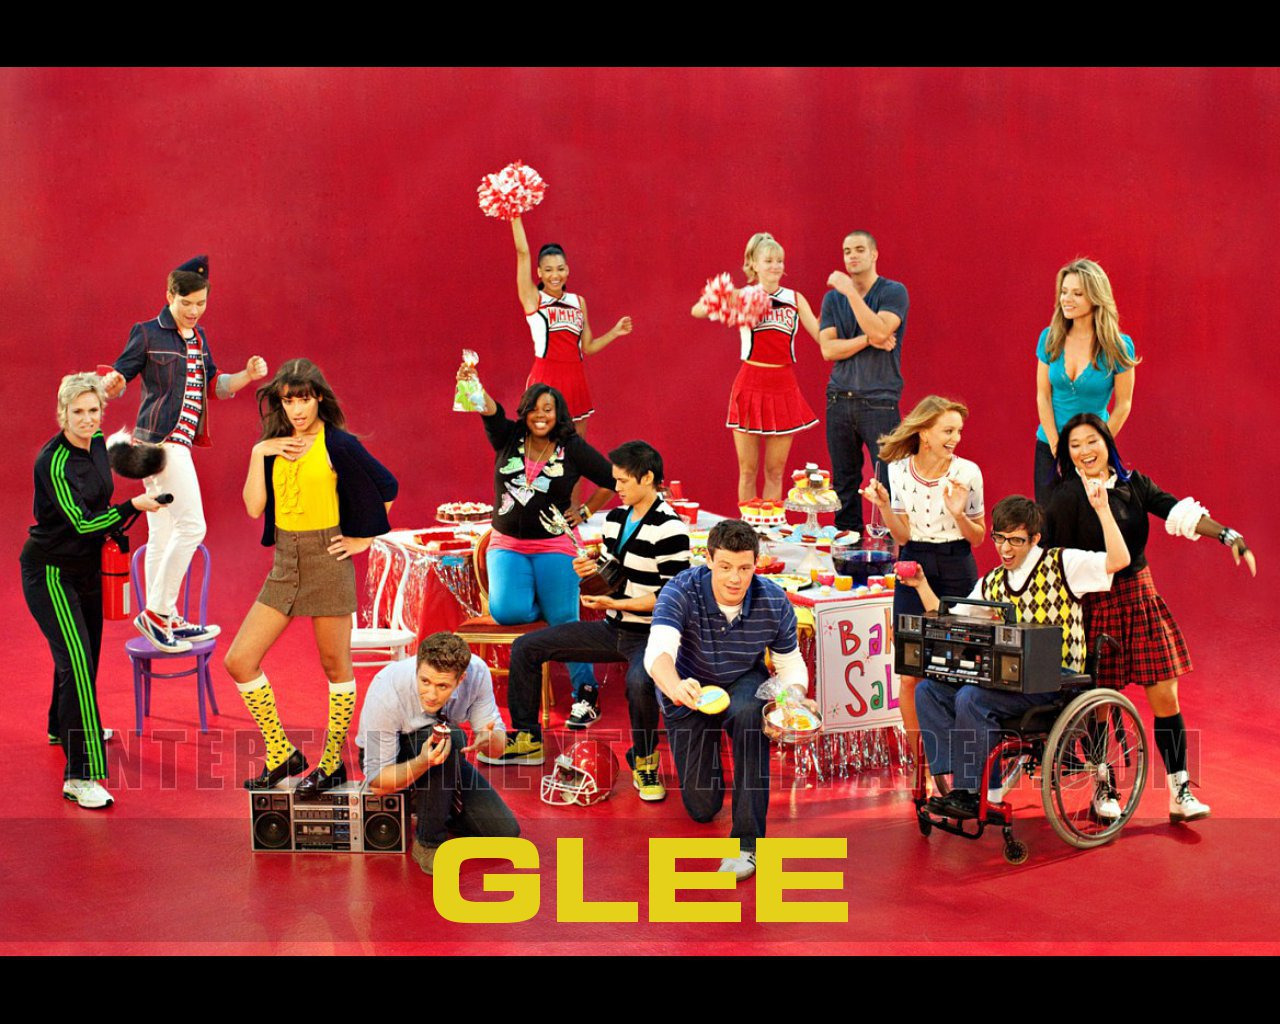 tv show glee wallpaper 20037474 size 1280x1024 more glee wallpaper 1280x1024